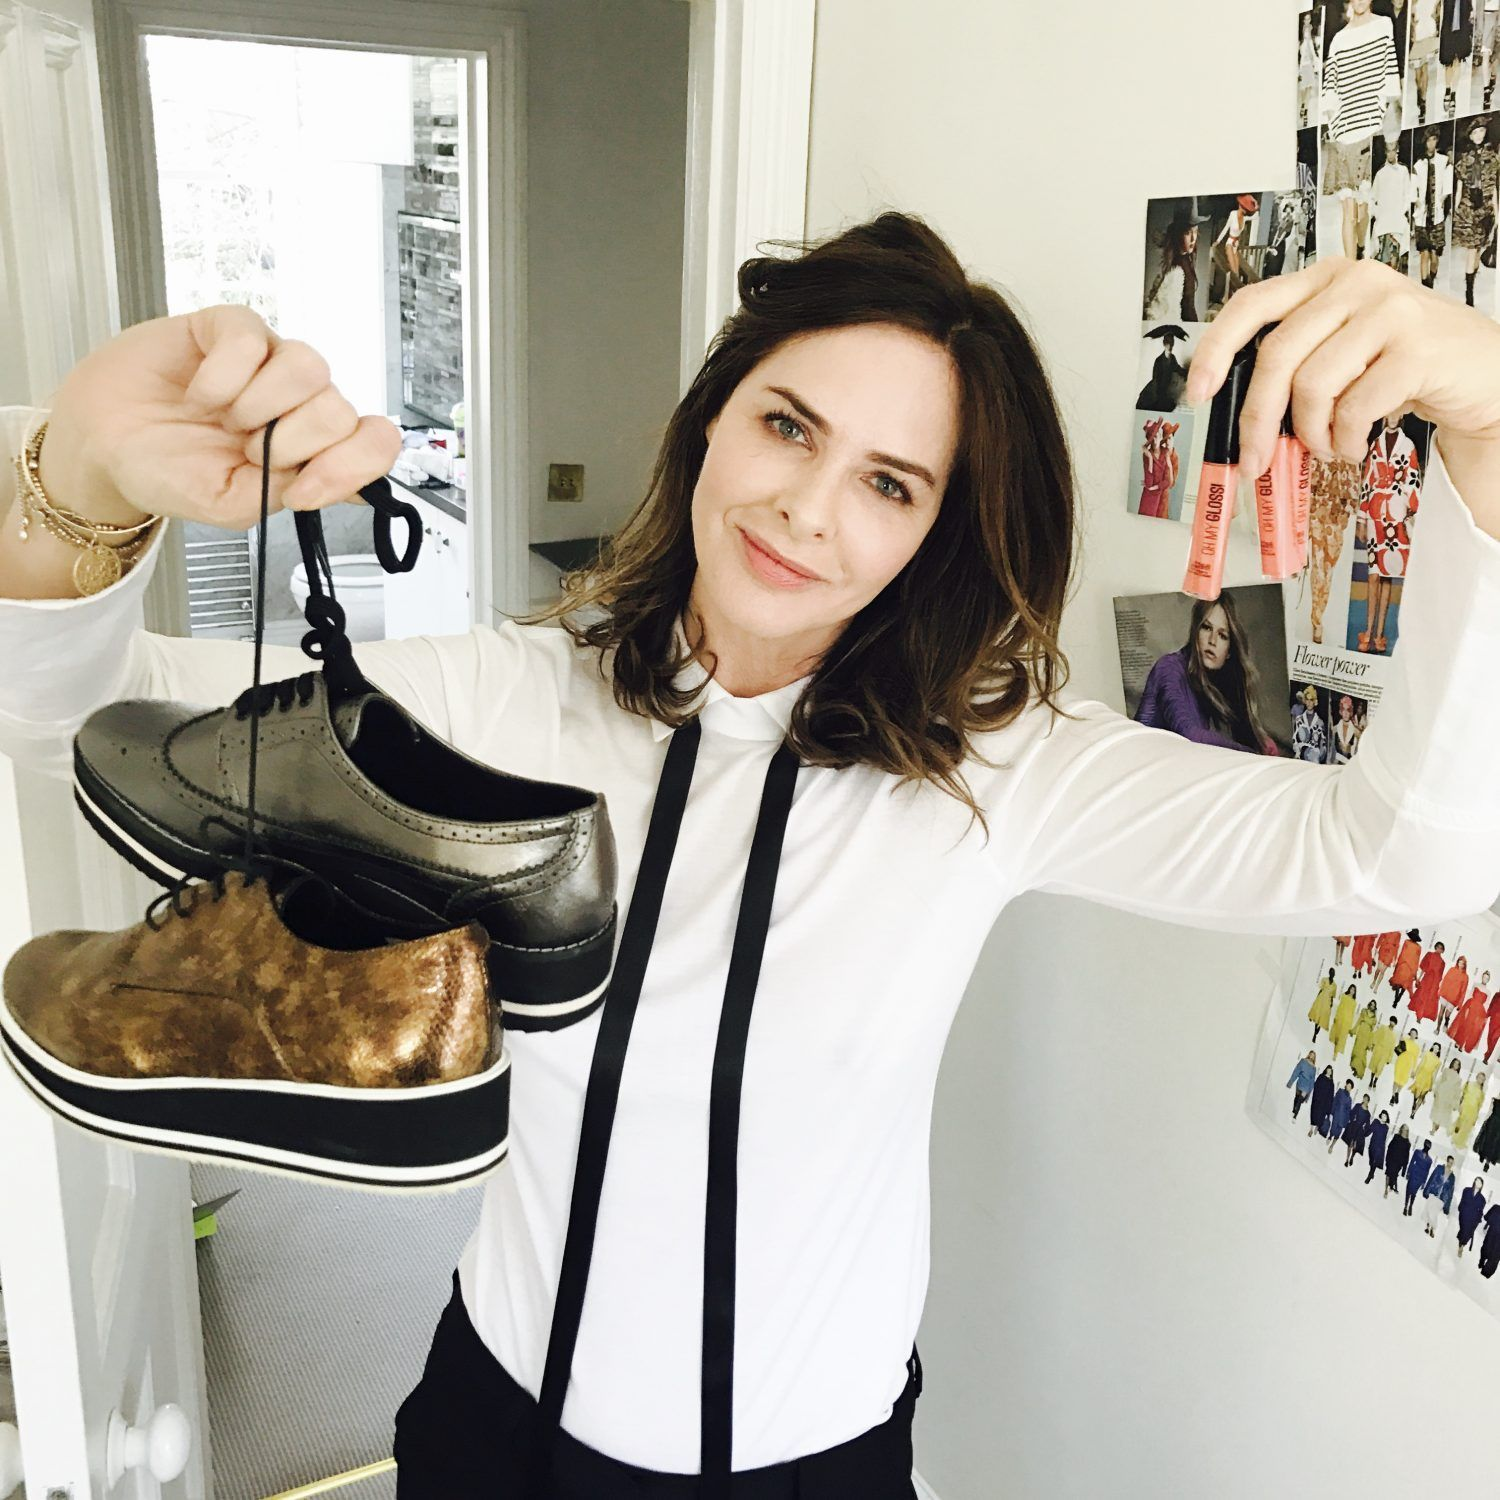 Trinny london trinny woodall outfits pinterest trinny trinny london trinny woodall floridaeventfo Image collections